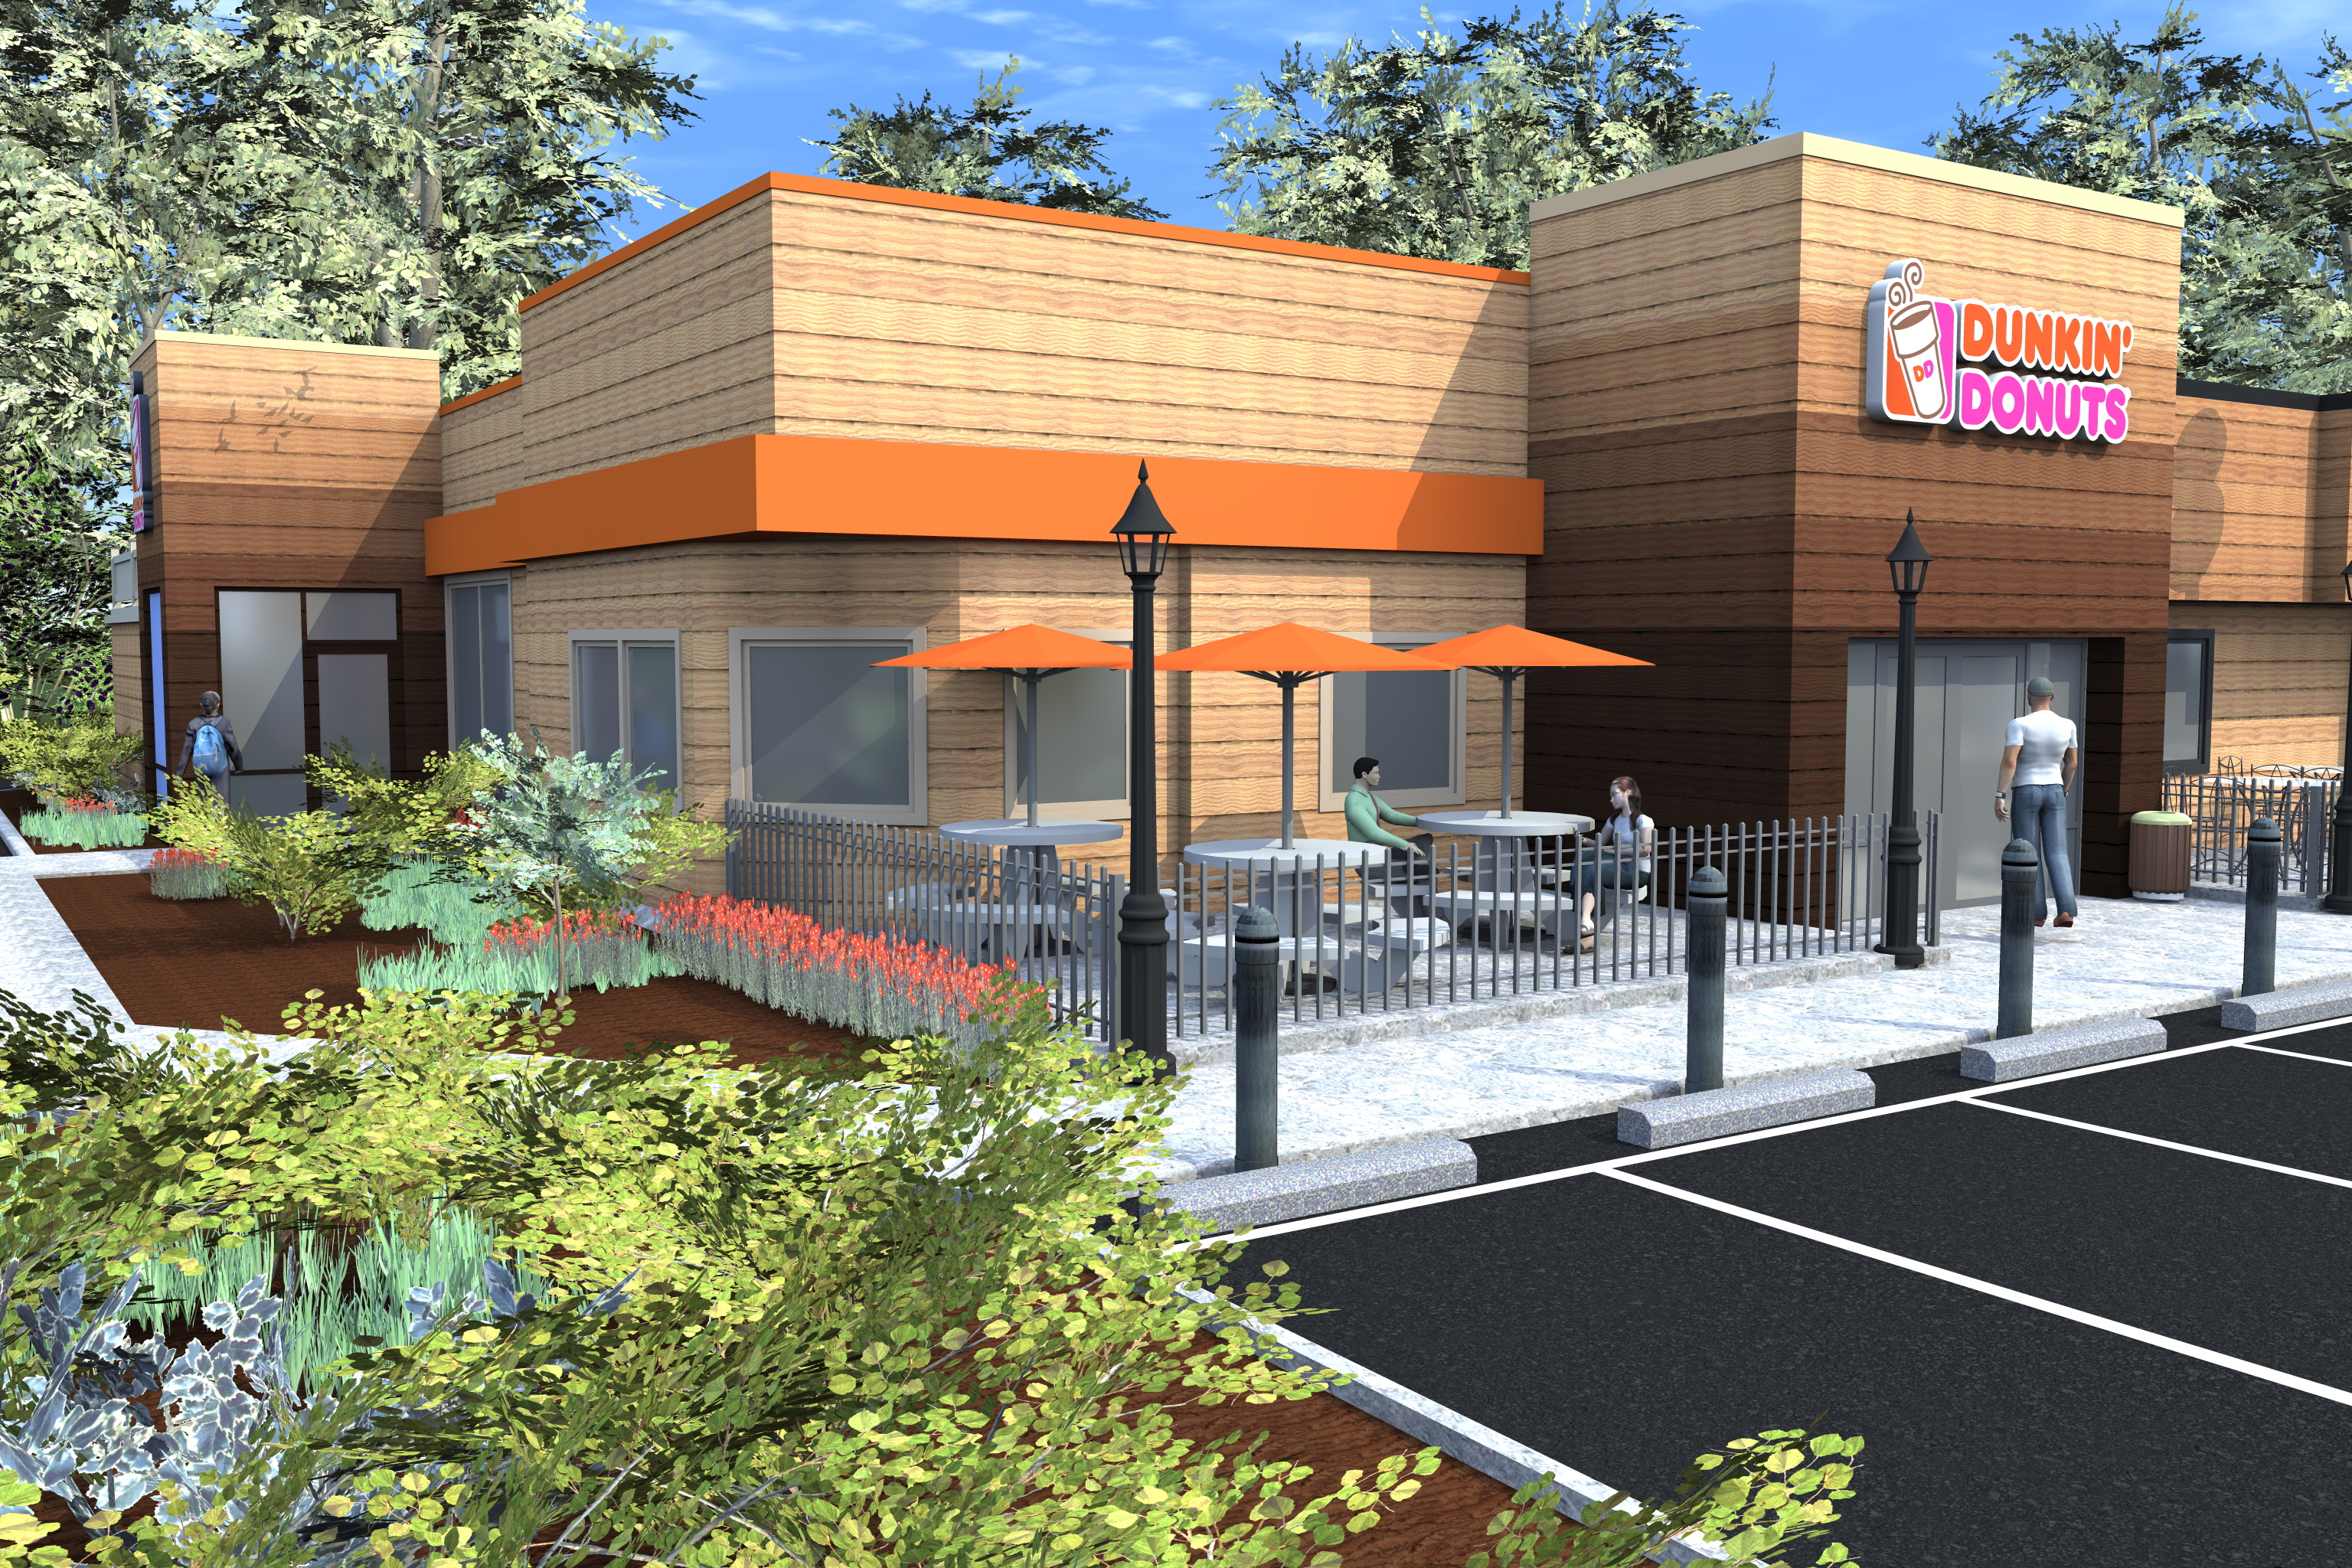 Dunkin Donuts Rendering